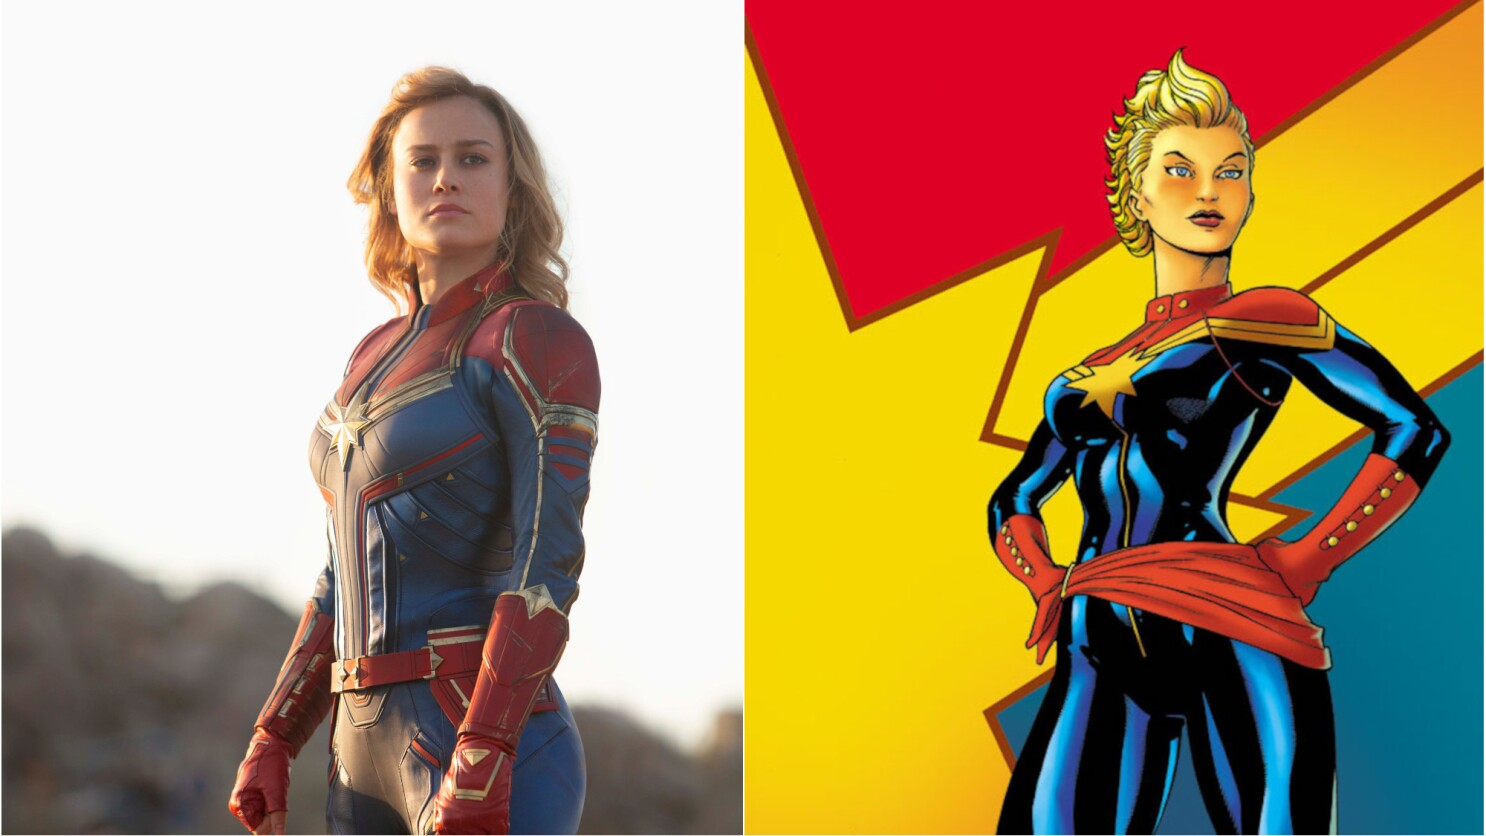 Captain Marvel A Brief History Of Carol Danvers Los Angeles Times Check out our captain marvel costume selection for the very best in unique or custom, handmade pieces from our costumes shops. captain marvel a brief history of